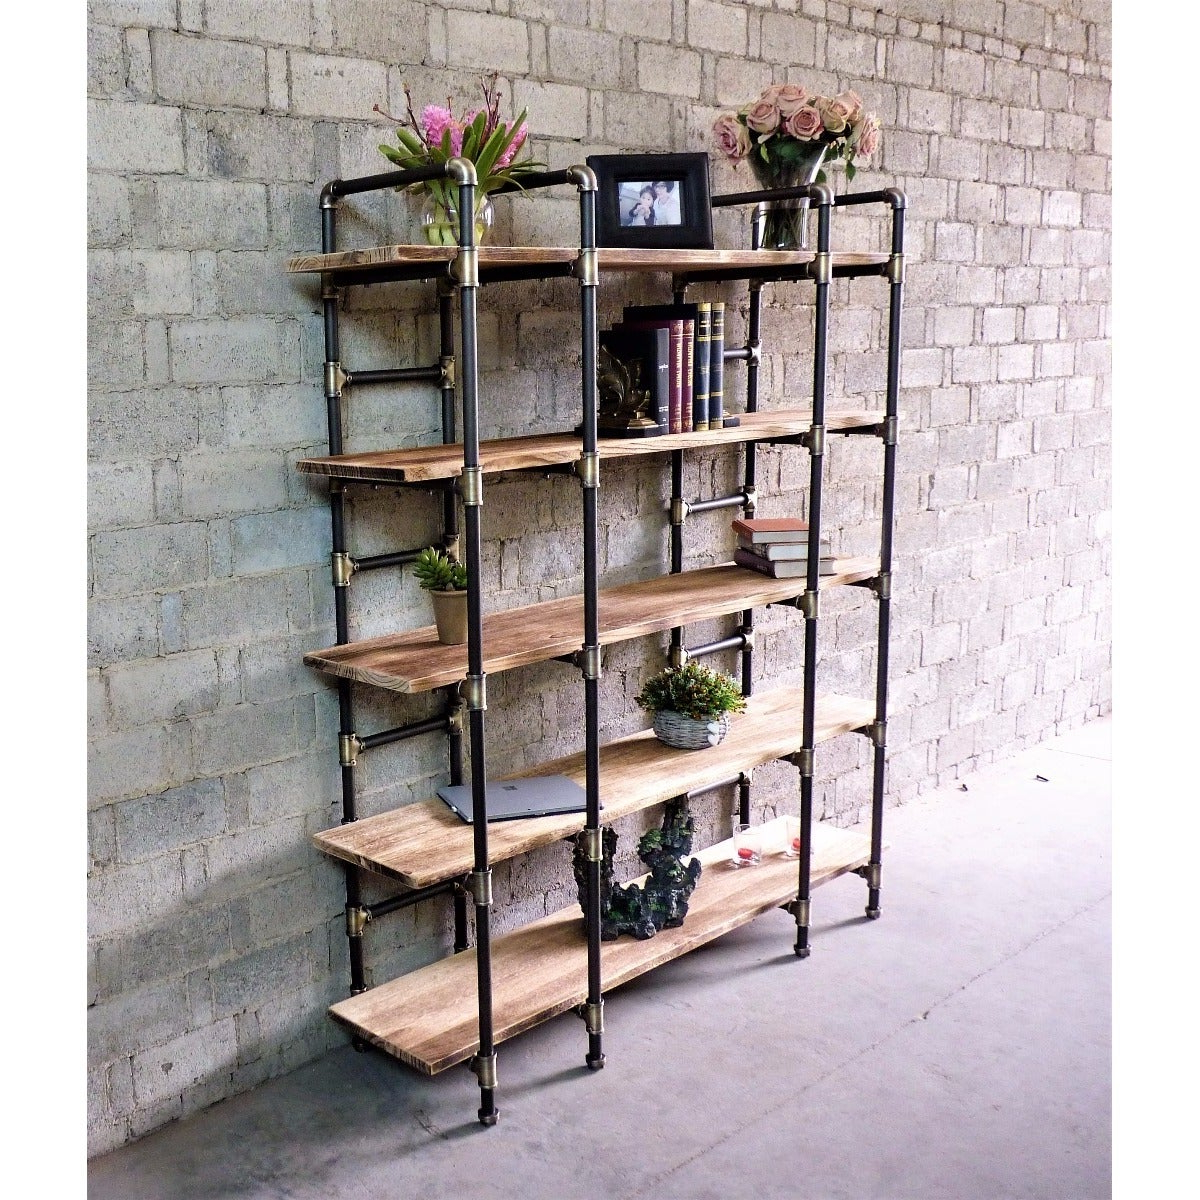 Champney Modern Etagere Bookcases For Preferred Manhattan Modern Industrial Etagere Bookcase (View 5 of 20)